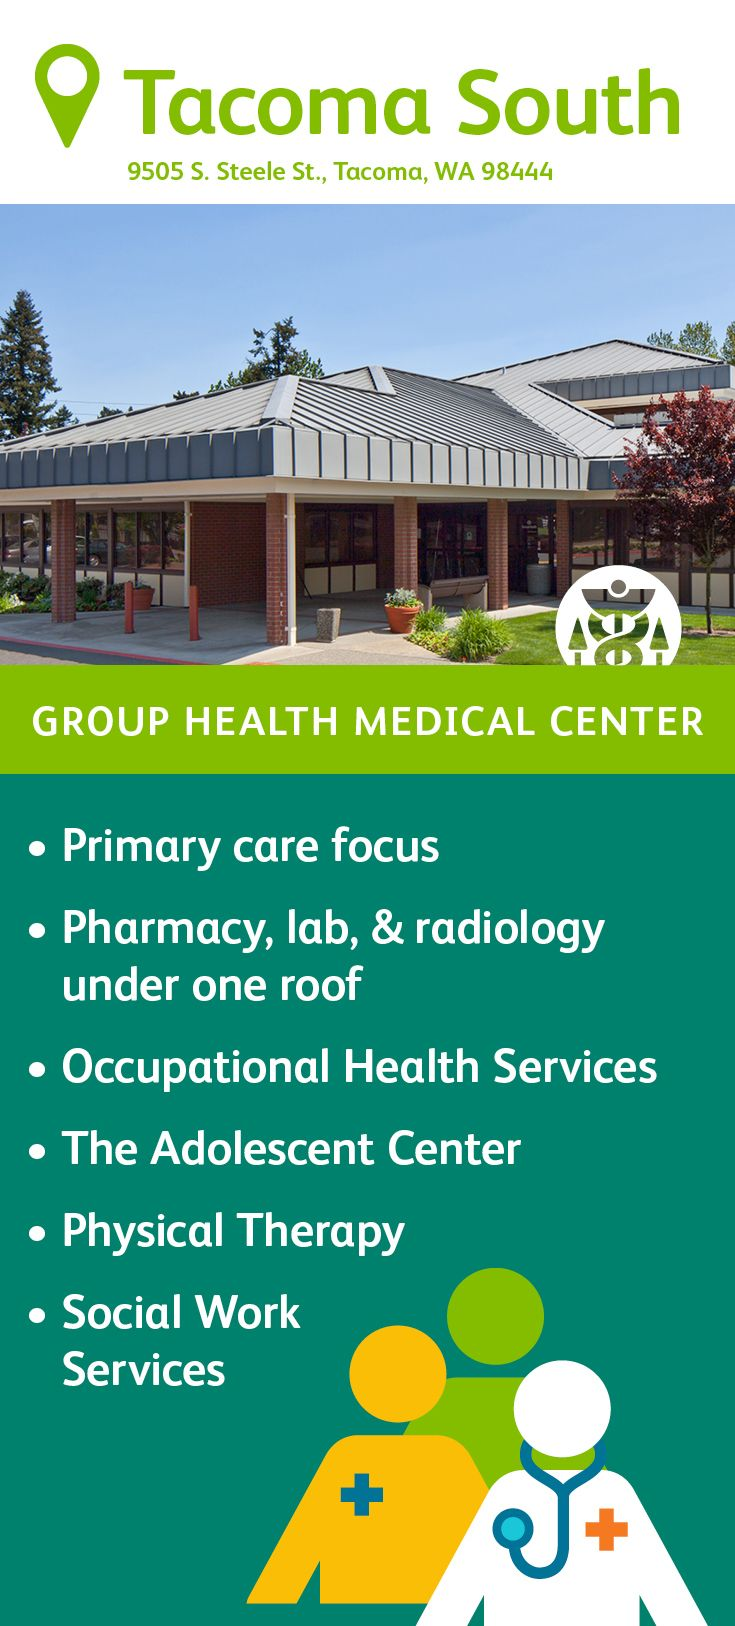 The Group Health Tacoma South Medical Center Features Primary Care